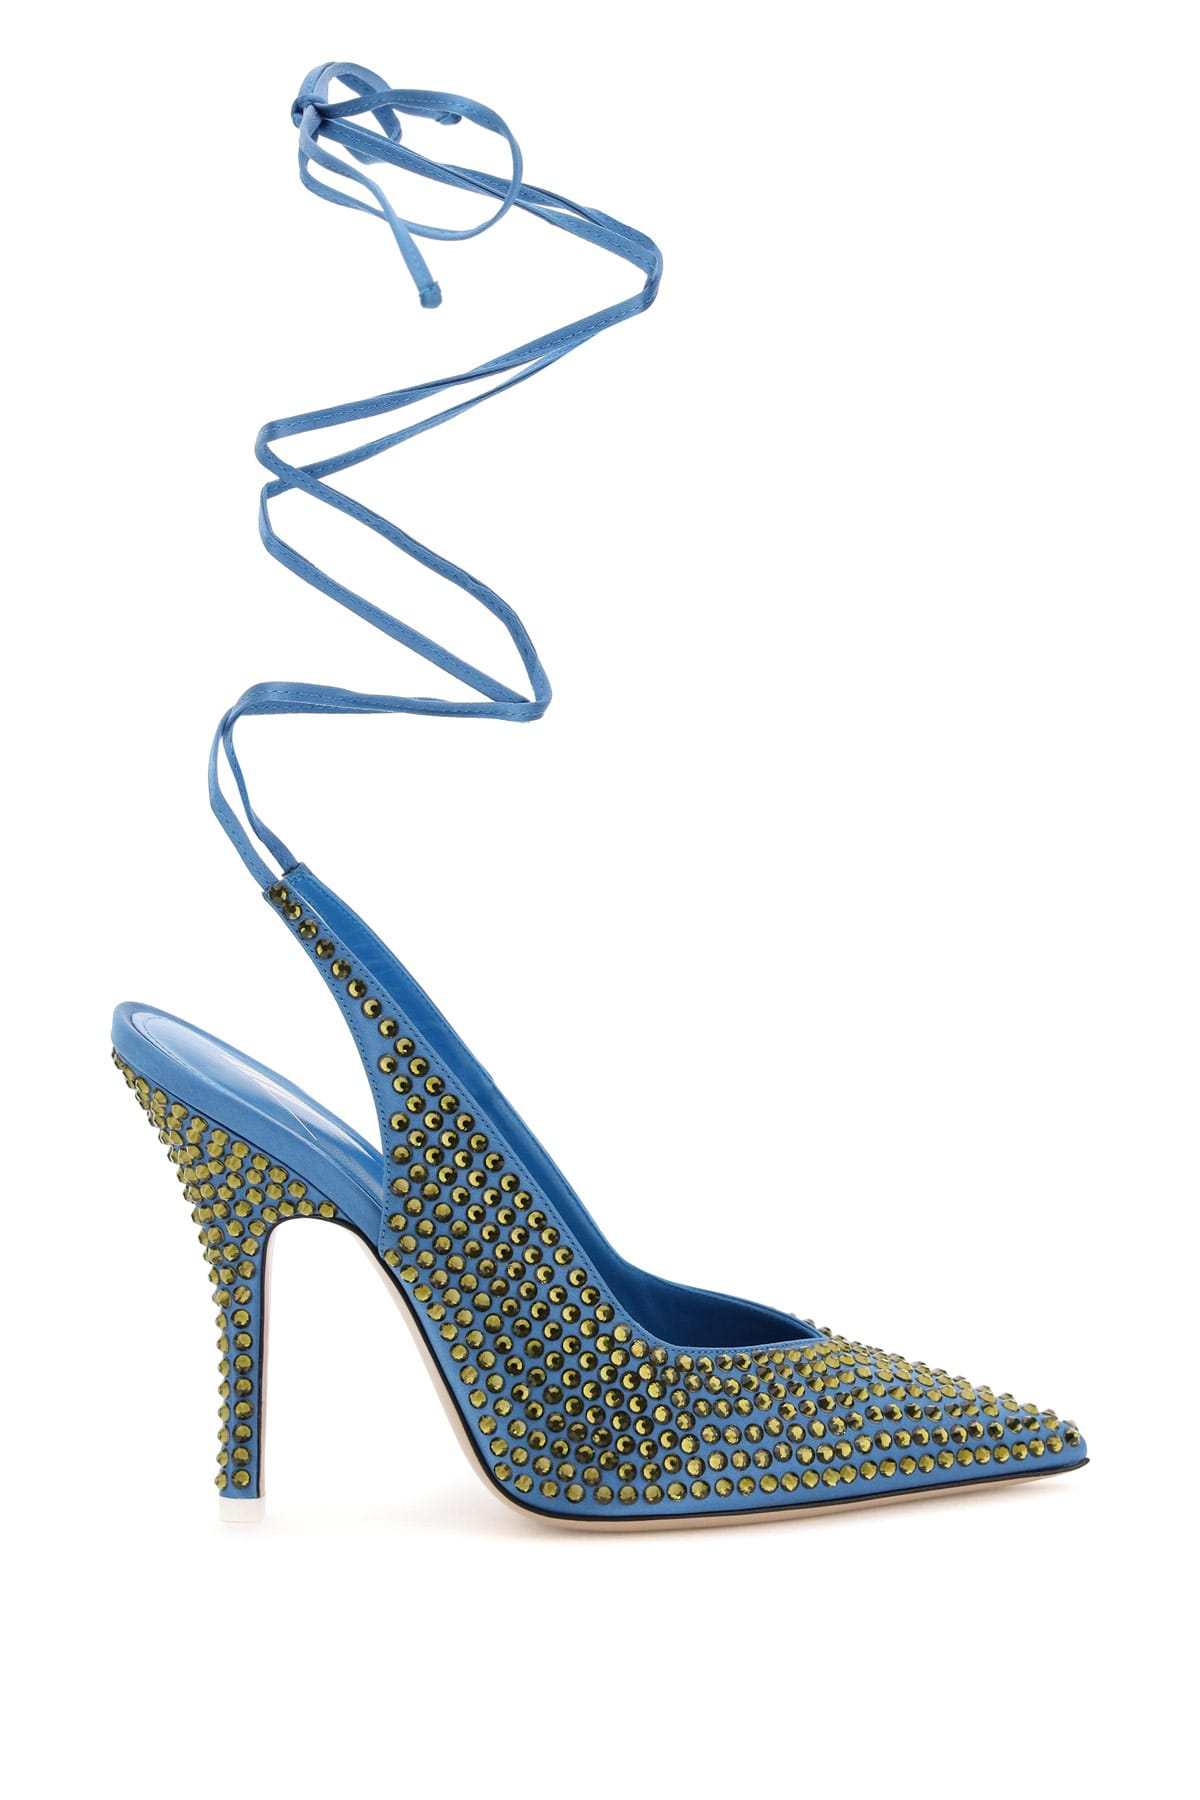 The Attico Wrap Around Slingback Pumps With Venus Crystals